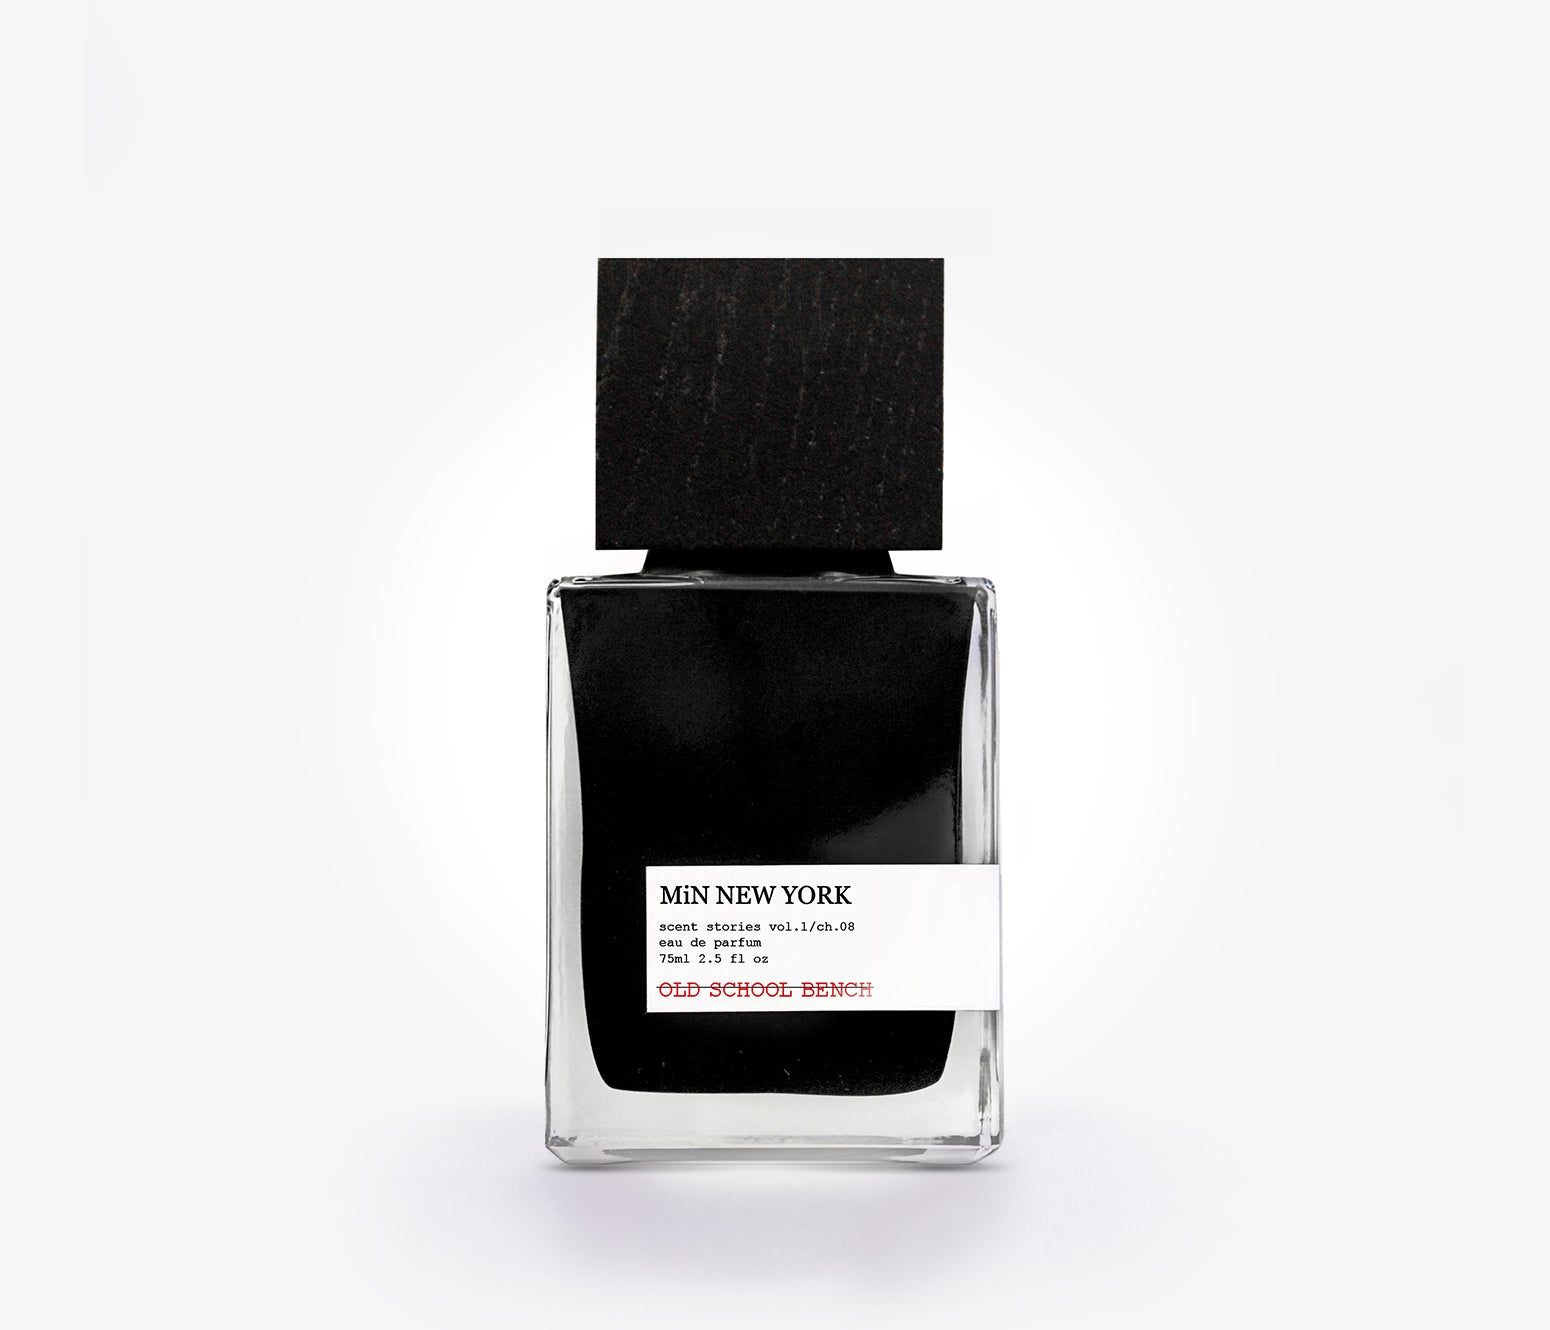 MiN New York - Old School Bench - 75ml - BNG001 - product image - Fragrance - Les Senteurs